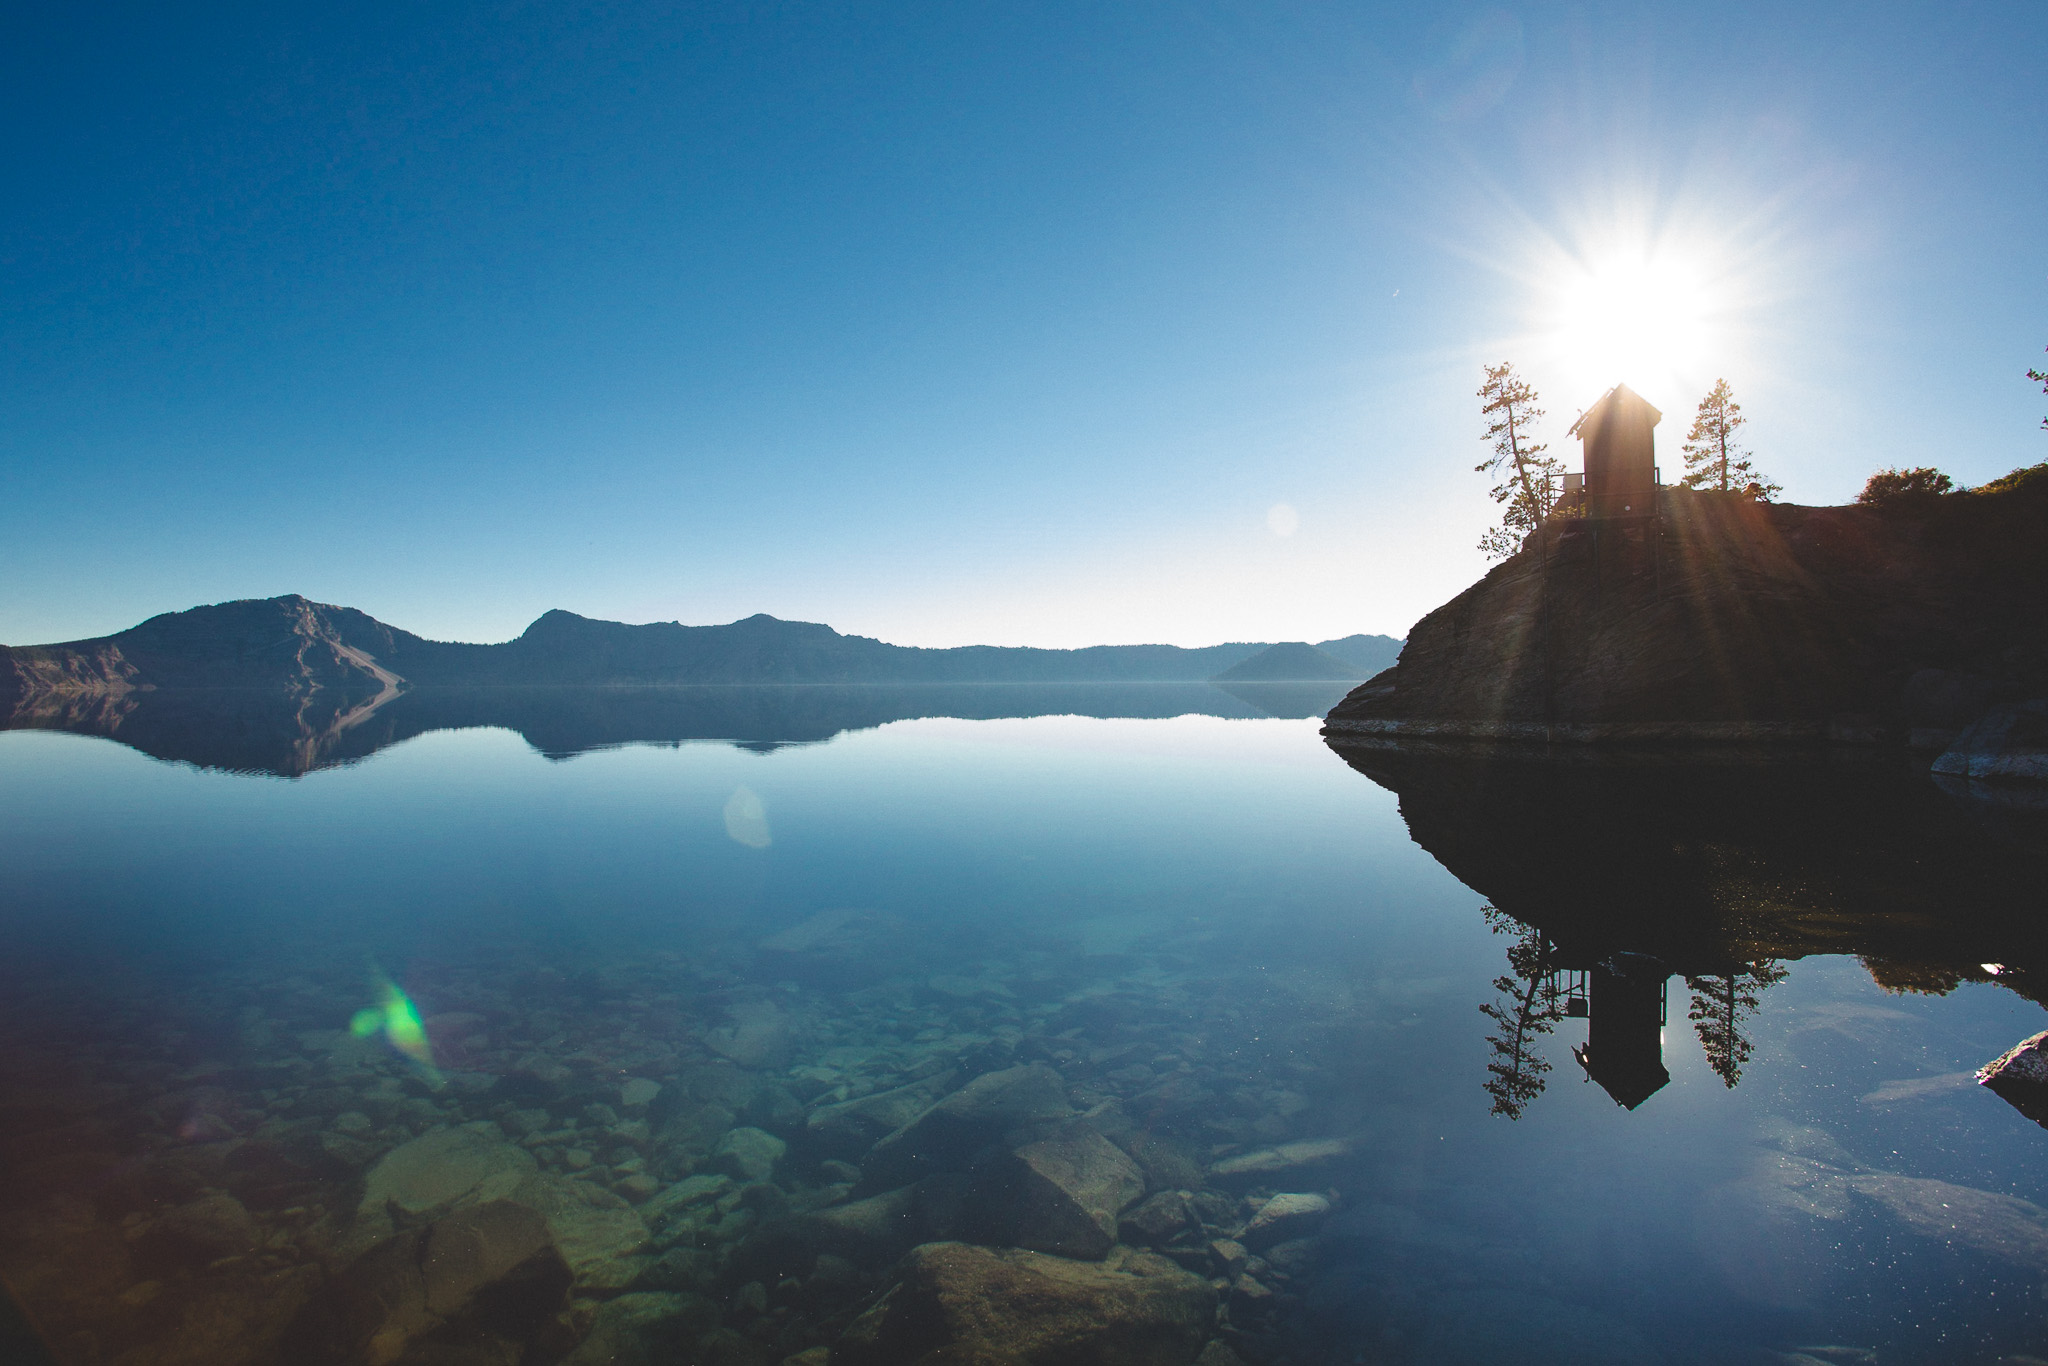 Reflection in crater lake